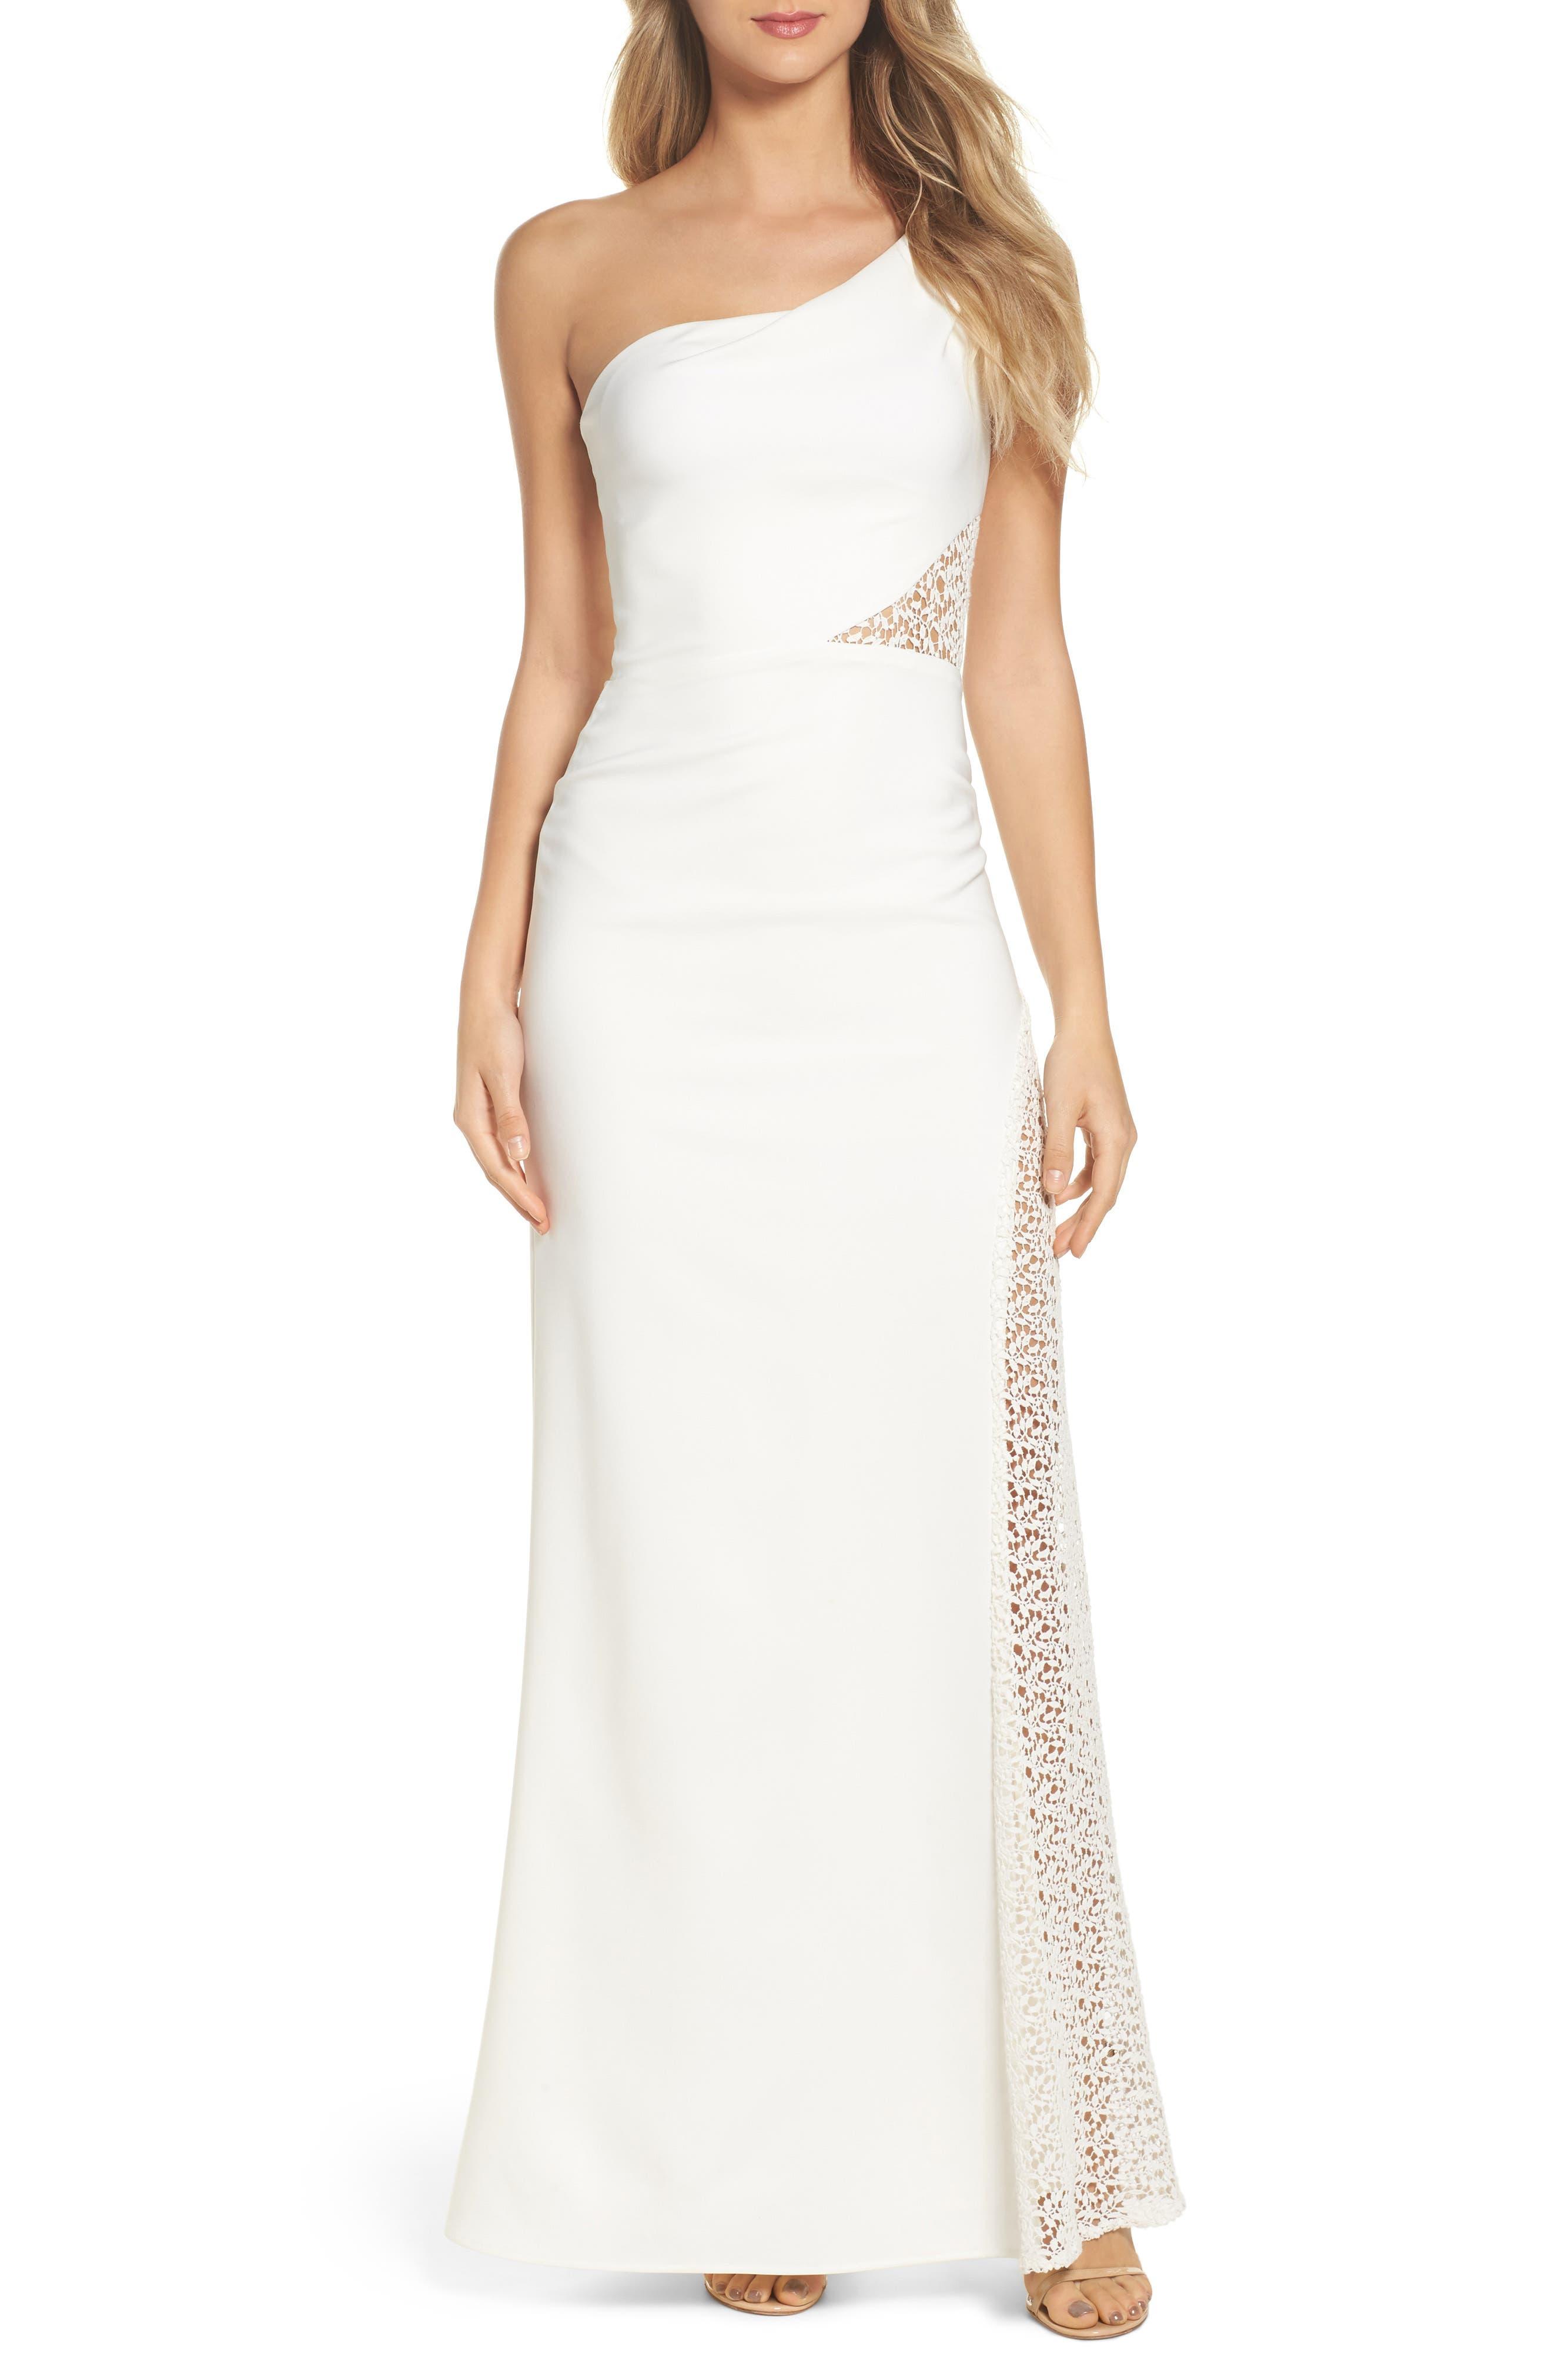 Olivia Lace Inset One-Shoulder Gown,                             Main thumbnail 1, color,                             900